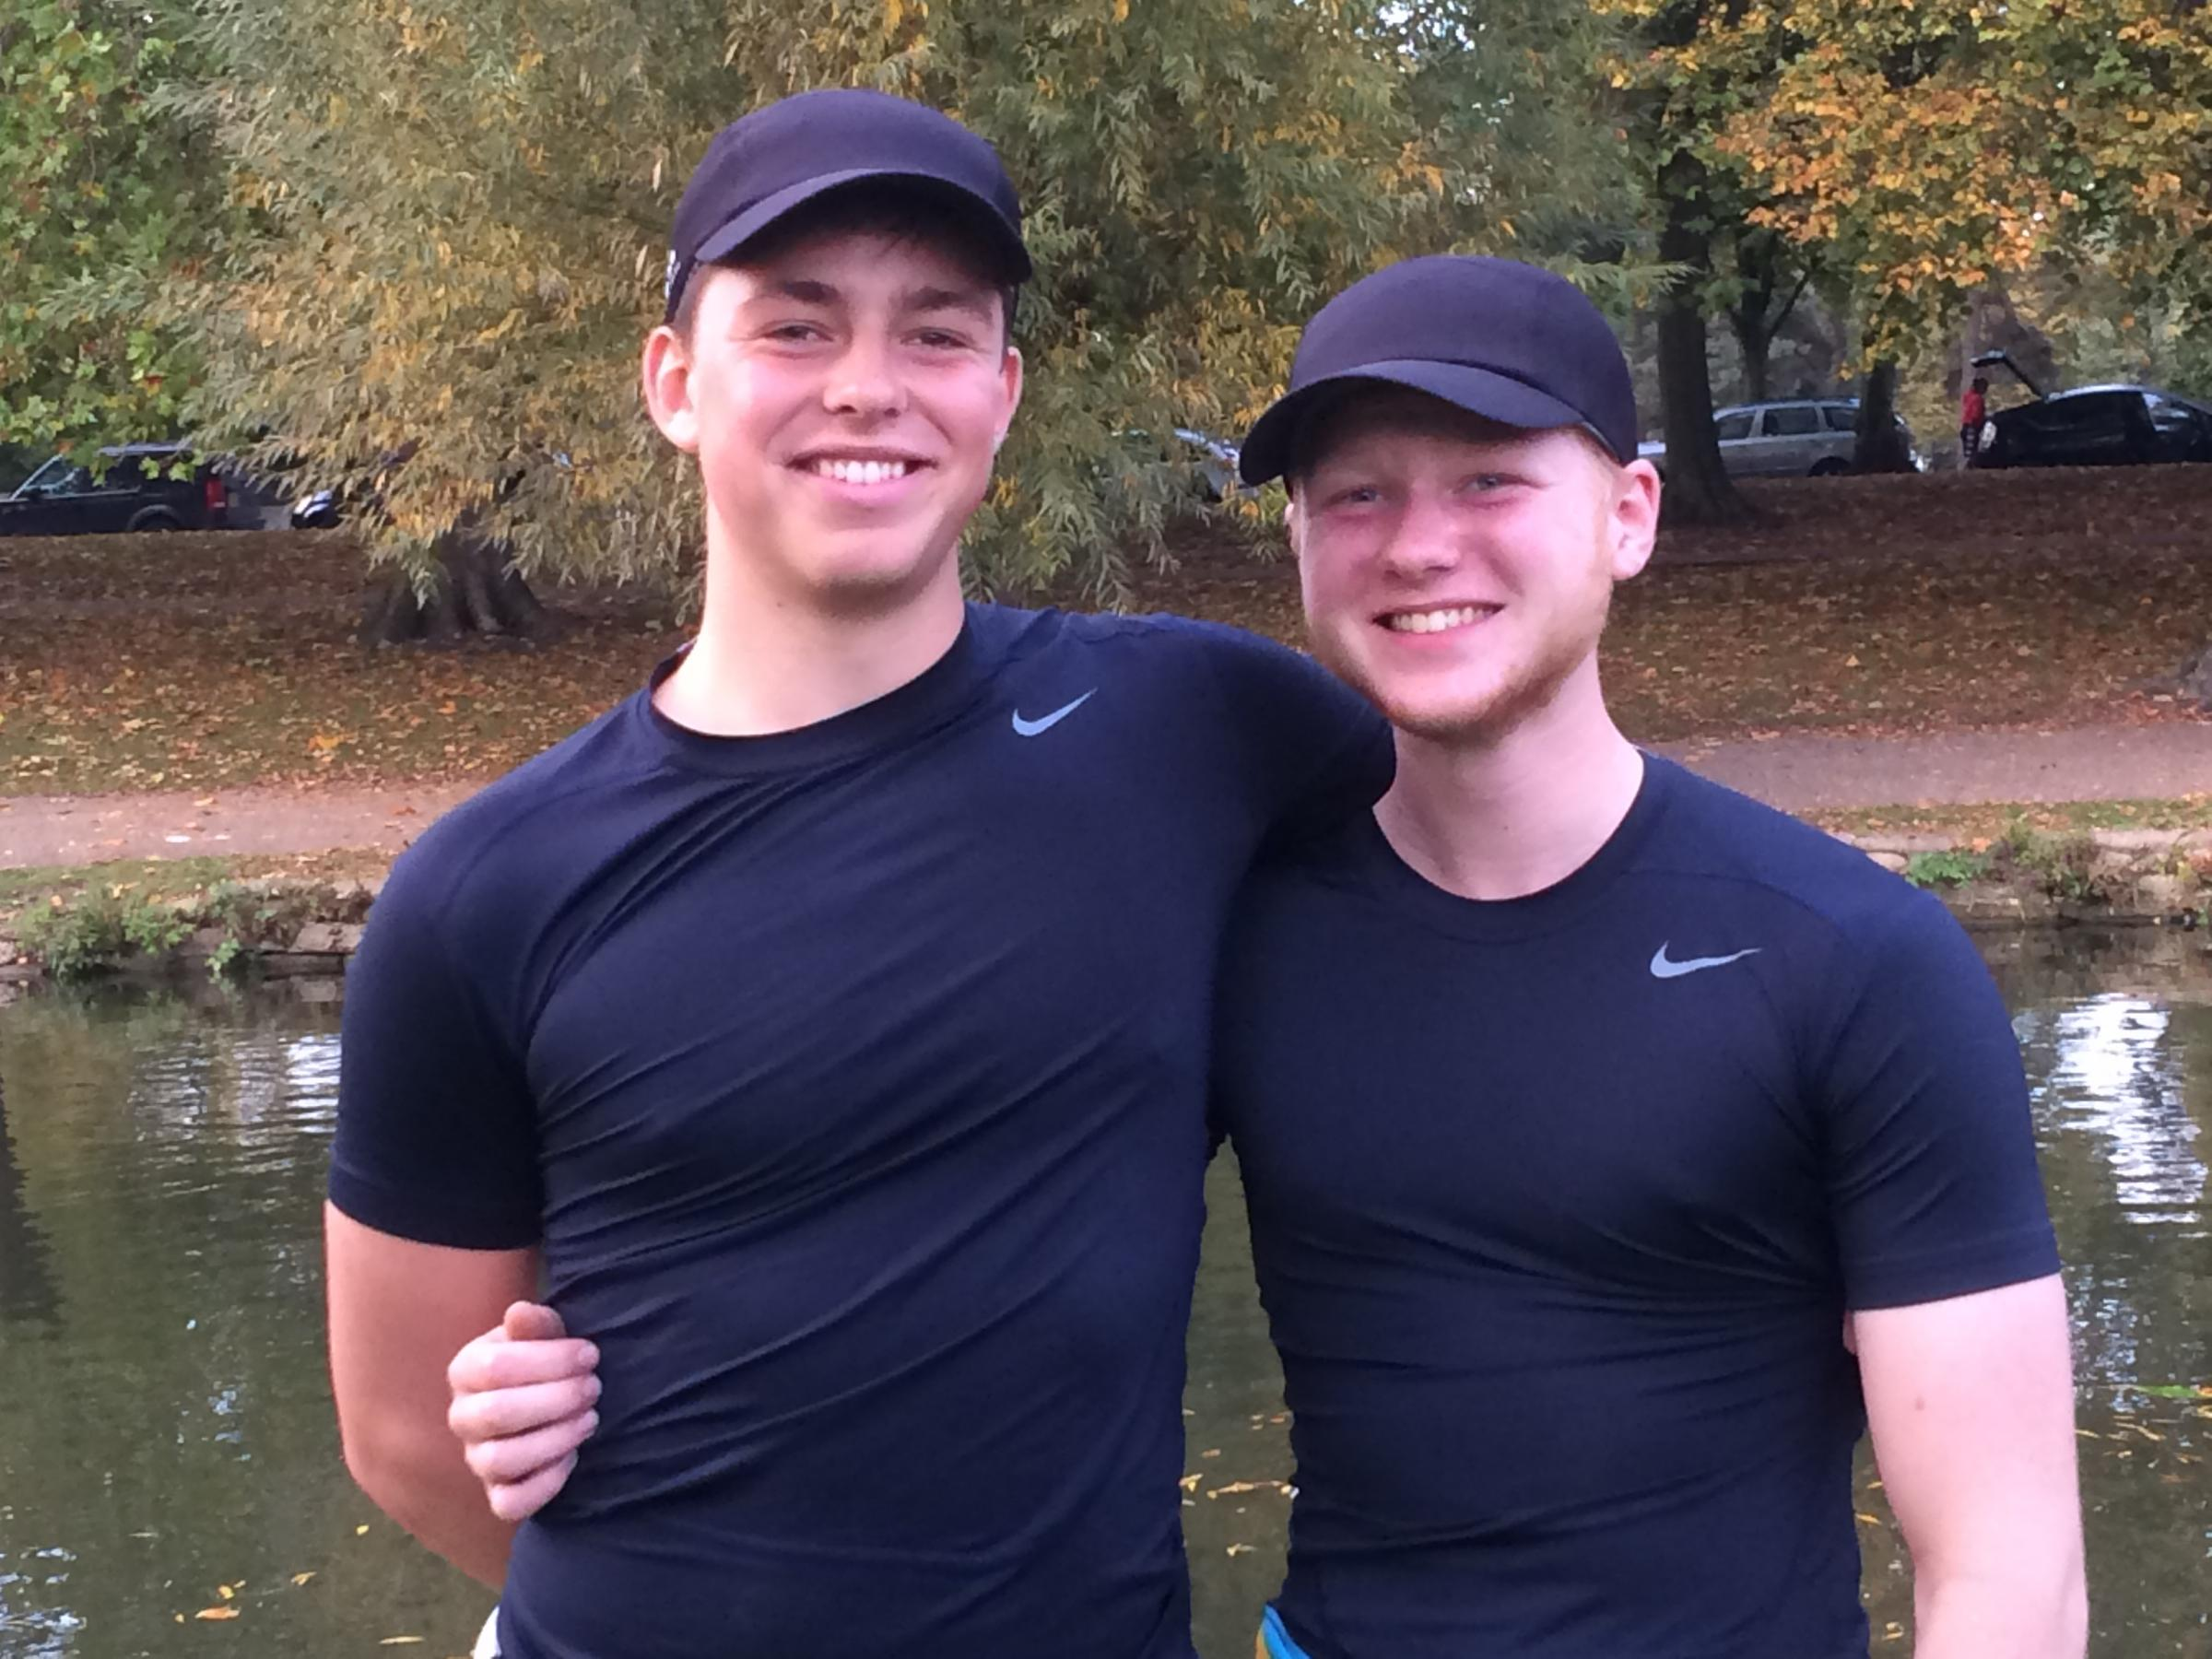 Falcon Rowing Club's Rory Pearce (left) and Joel Garden, who won the J16 double scull event at Bedford Autumn Fours